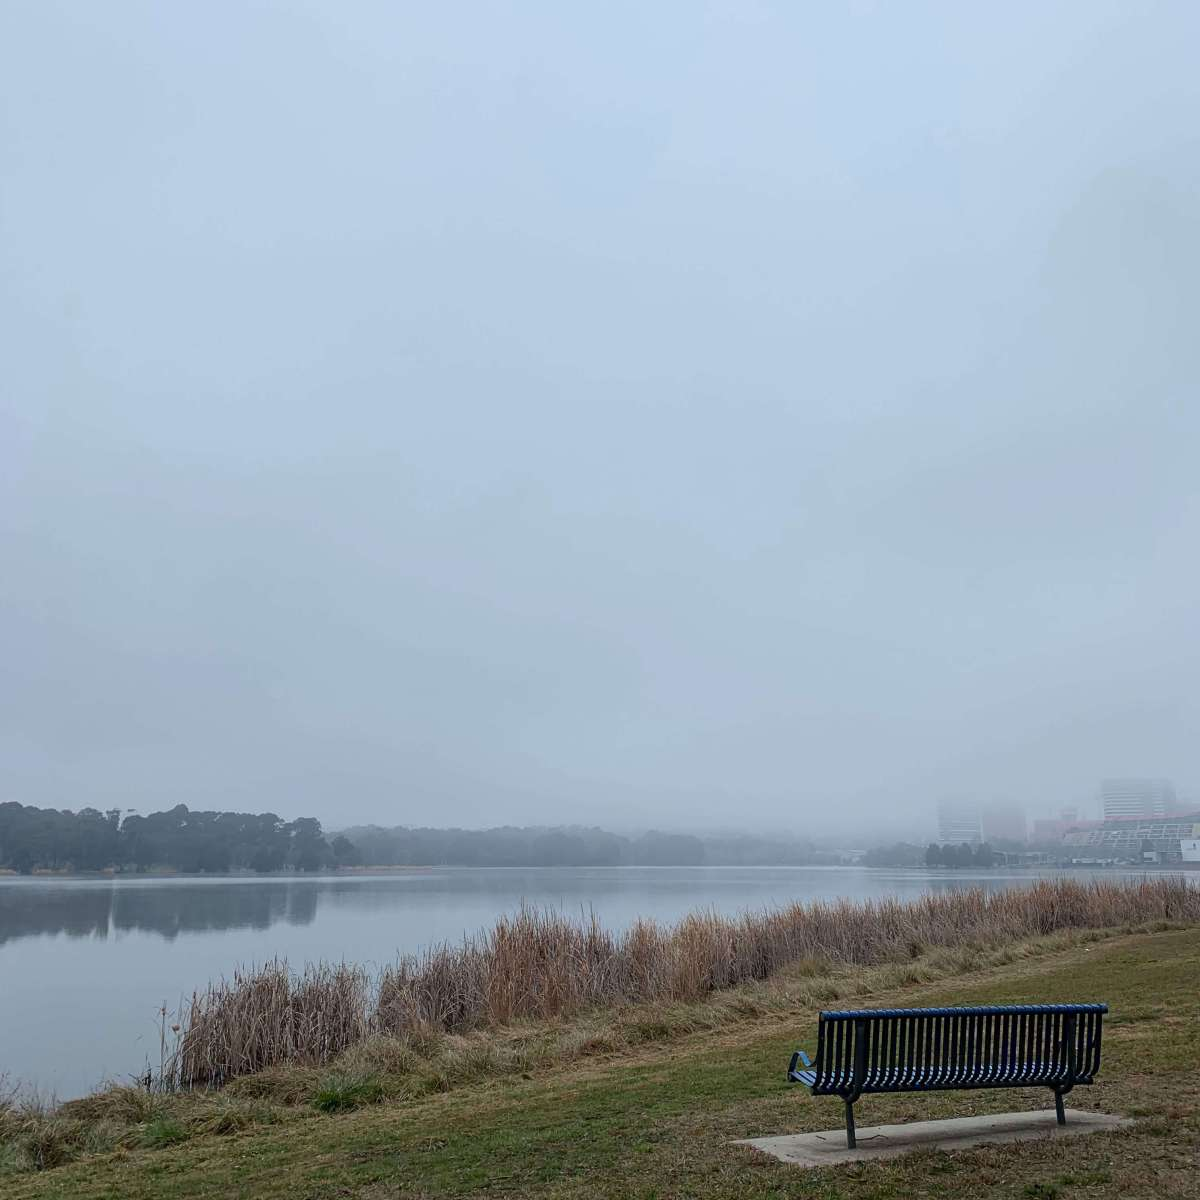 Foggy day by Lake Ginninderra, Canberra